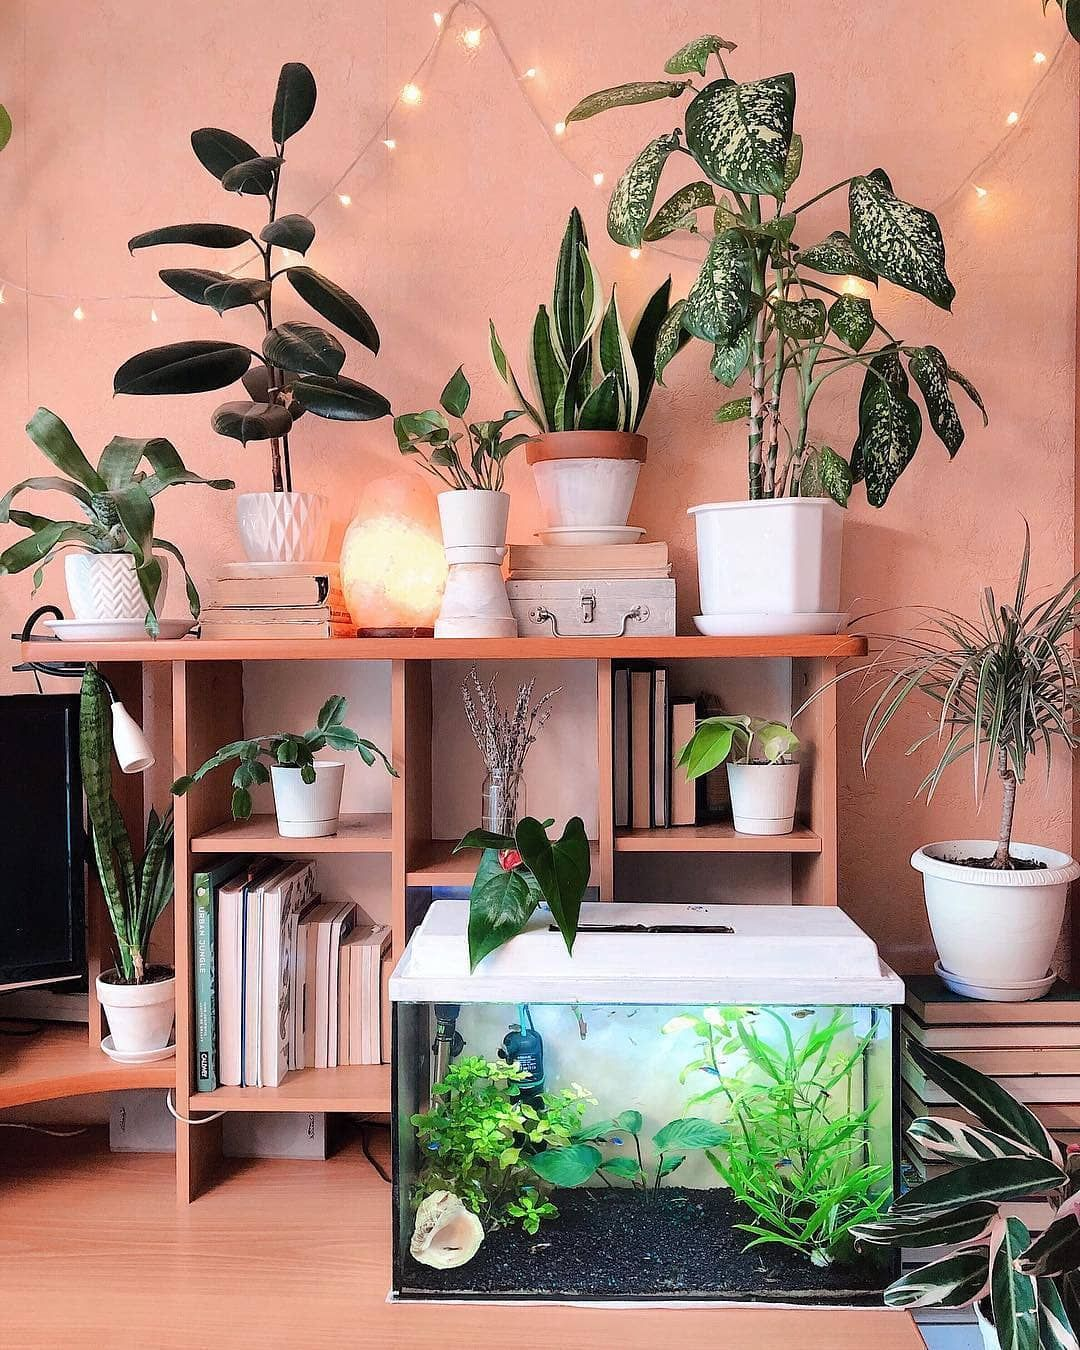 Cozy plant corner😍 Share your thoughts in the comments and ... on Amazing Plant Stand Ideas  id=46189